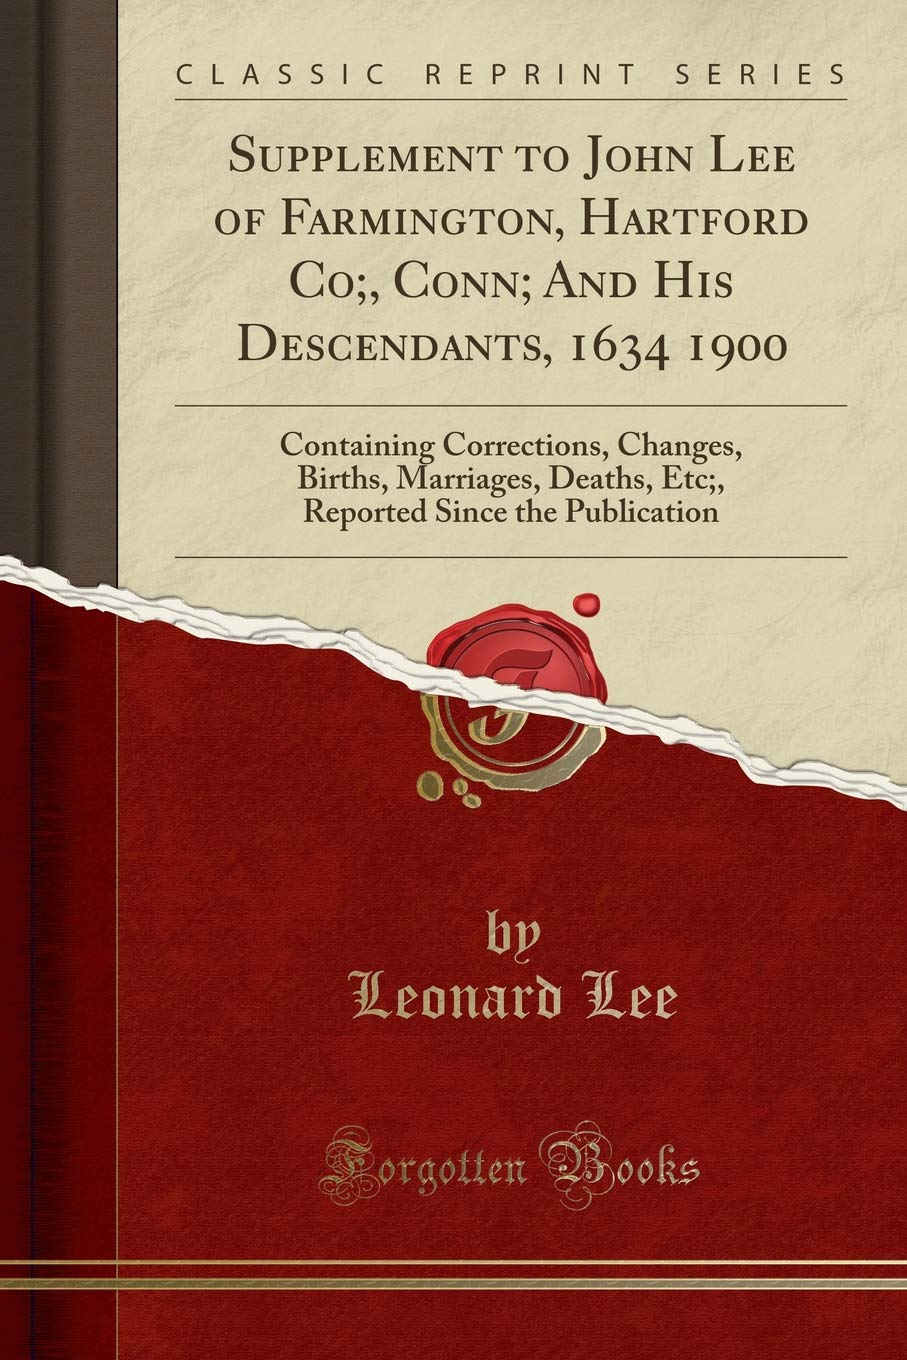 Supplement to John Lee of Farmington Hartford Co; Conn; And His Descendants 1634 1900- Containing Corrections Changes Births Marriages Deaths   Since the Publication Classic Reprint  ebook by Leonard Lee